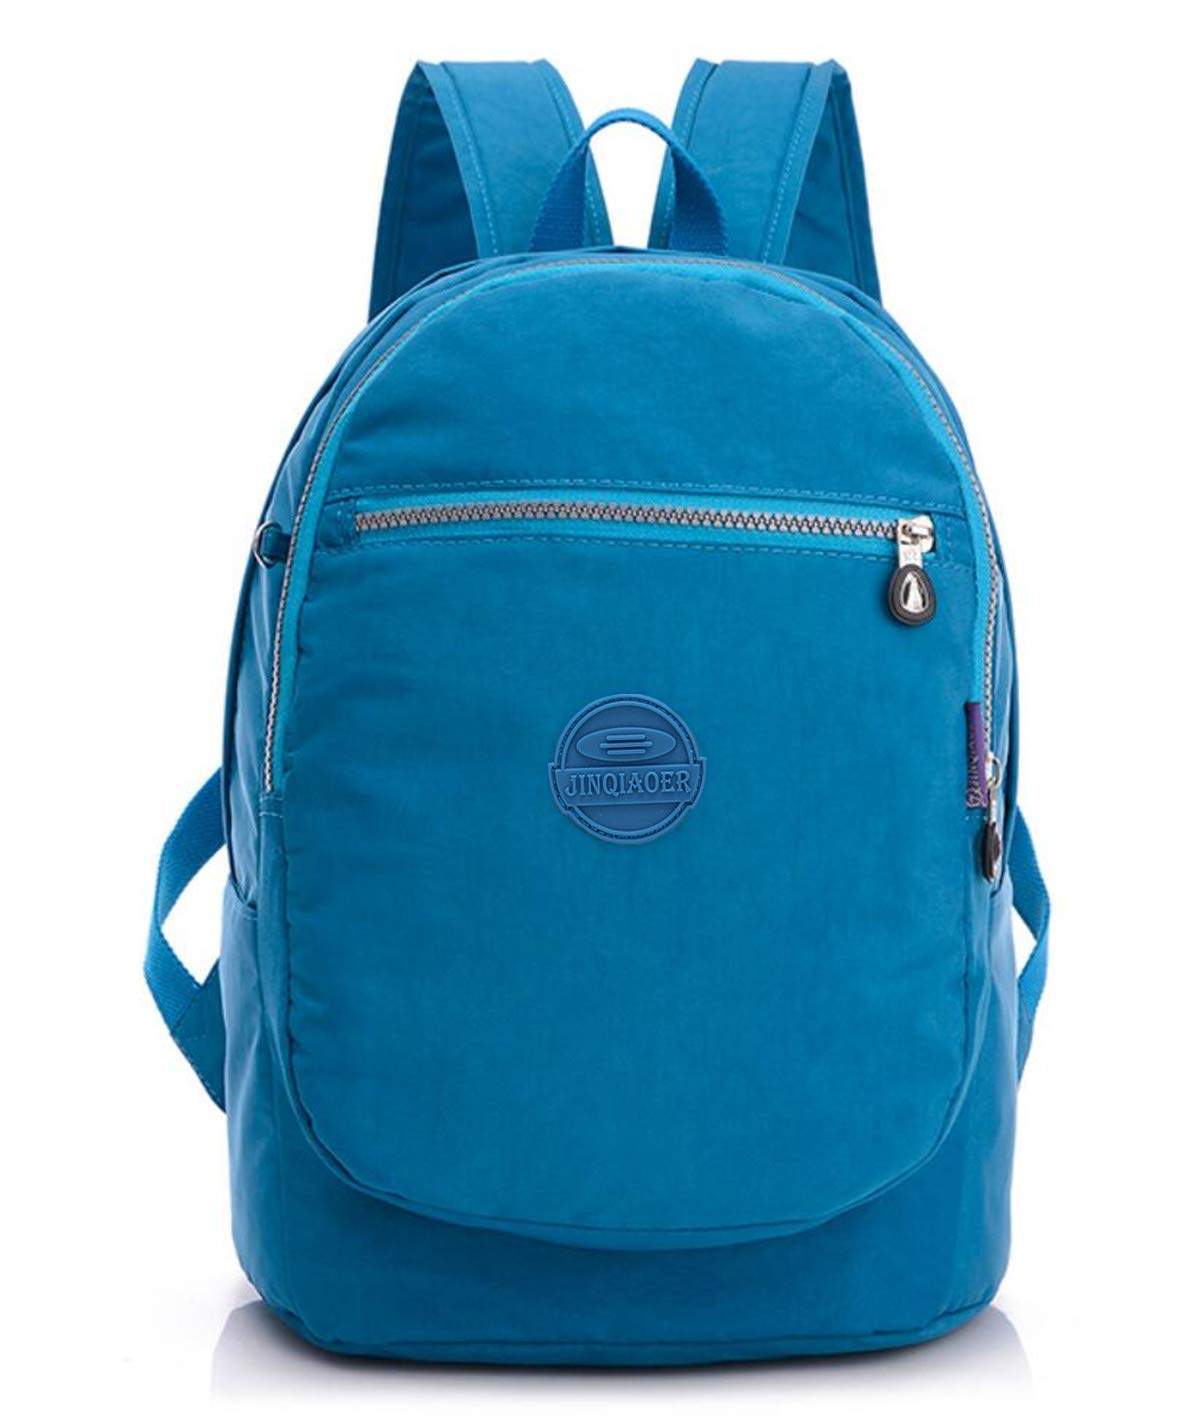 cfa1f90a0b81 Big Mango Fashion Backpack for Women Lightweight Water Resistant Nylon  Hiking Camping Daypack Multipurpose Travel Backpack Schoolbag